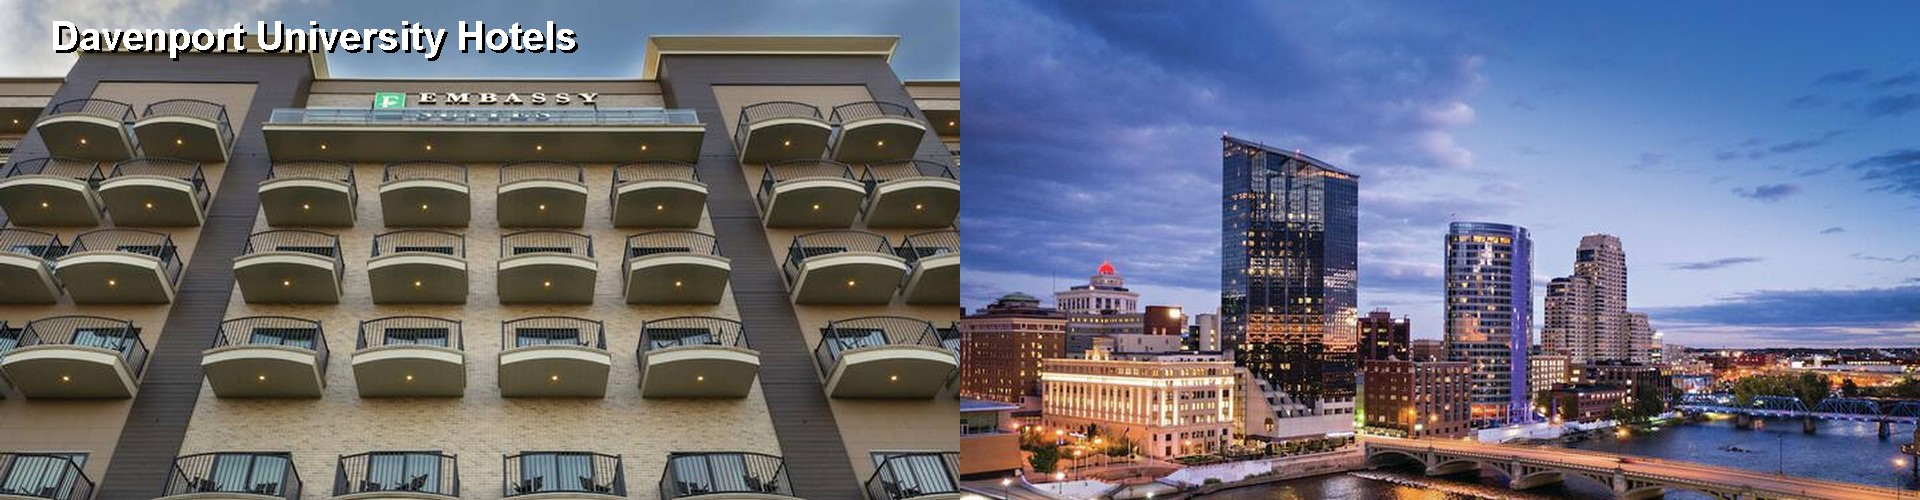 5 Best Hotels near Davenport University